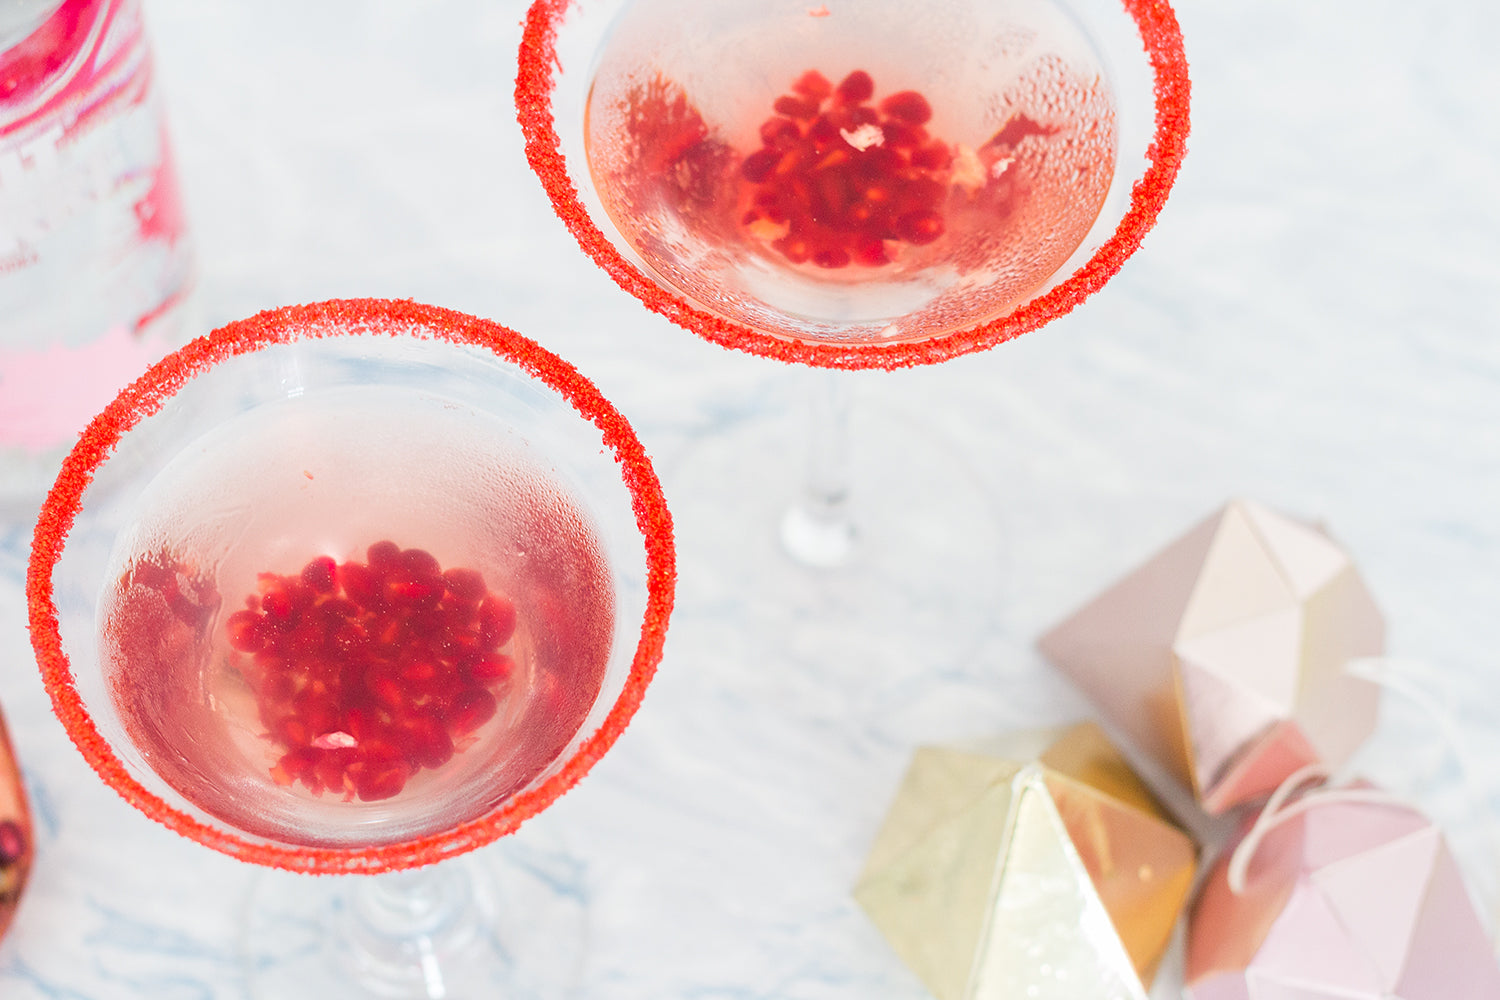 Raspberry cosmopolitan garnish with red decorating sandy sugar